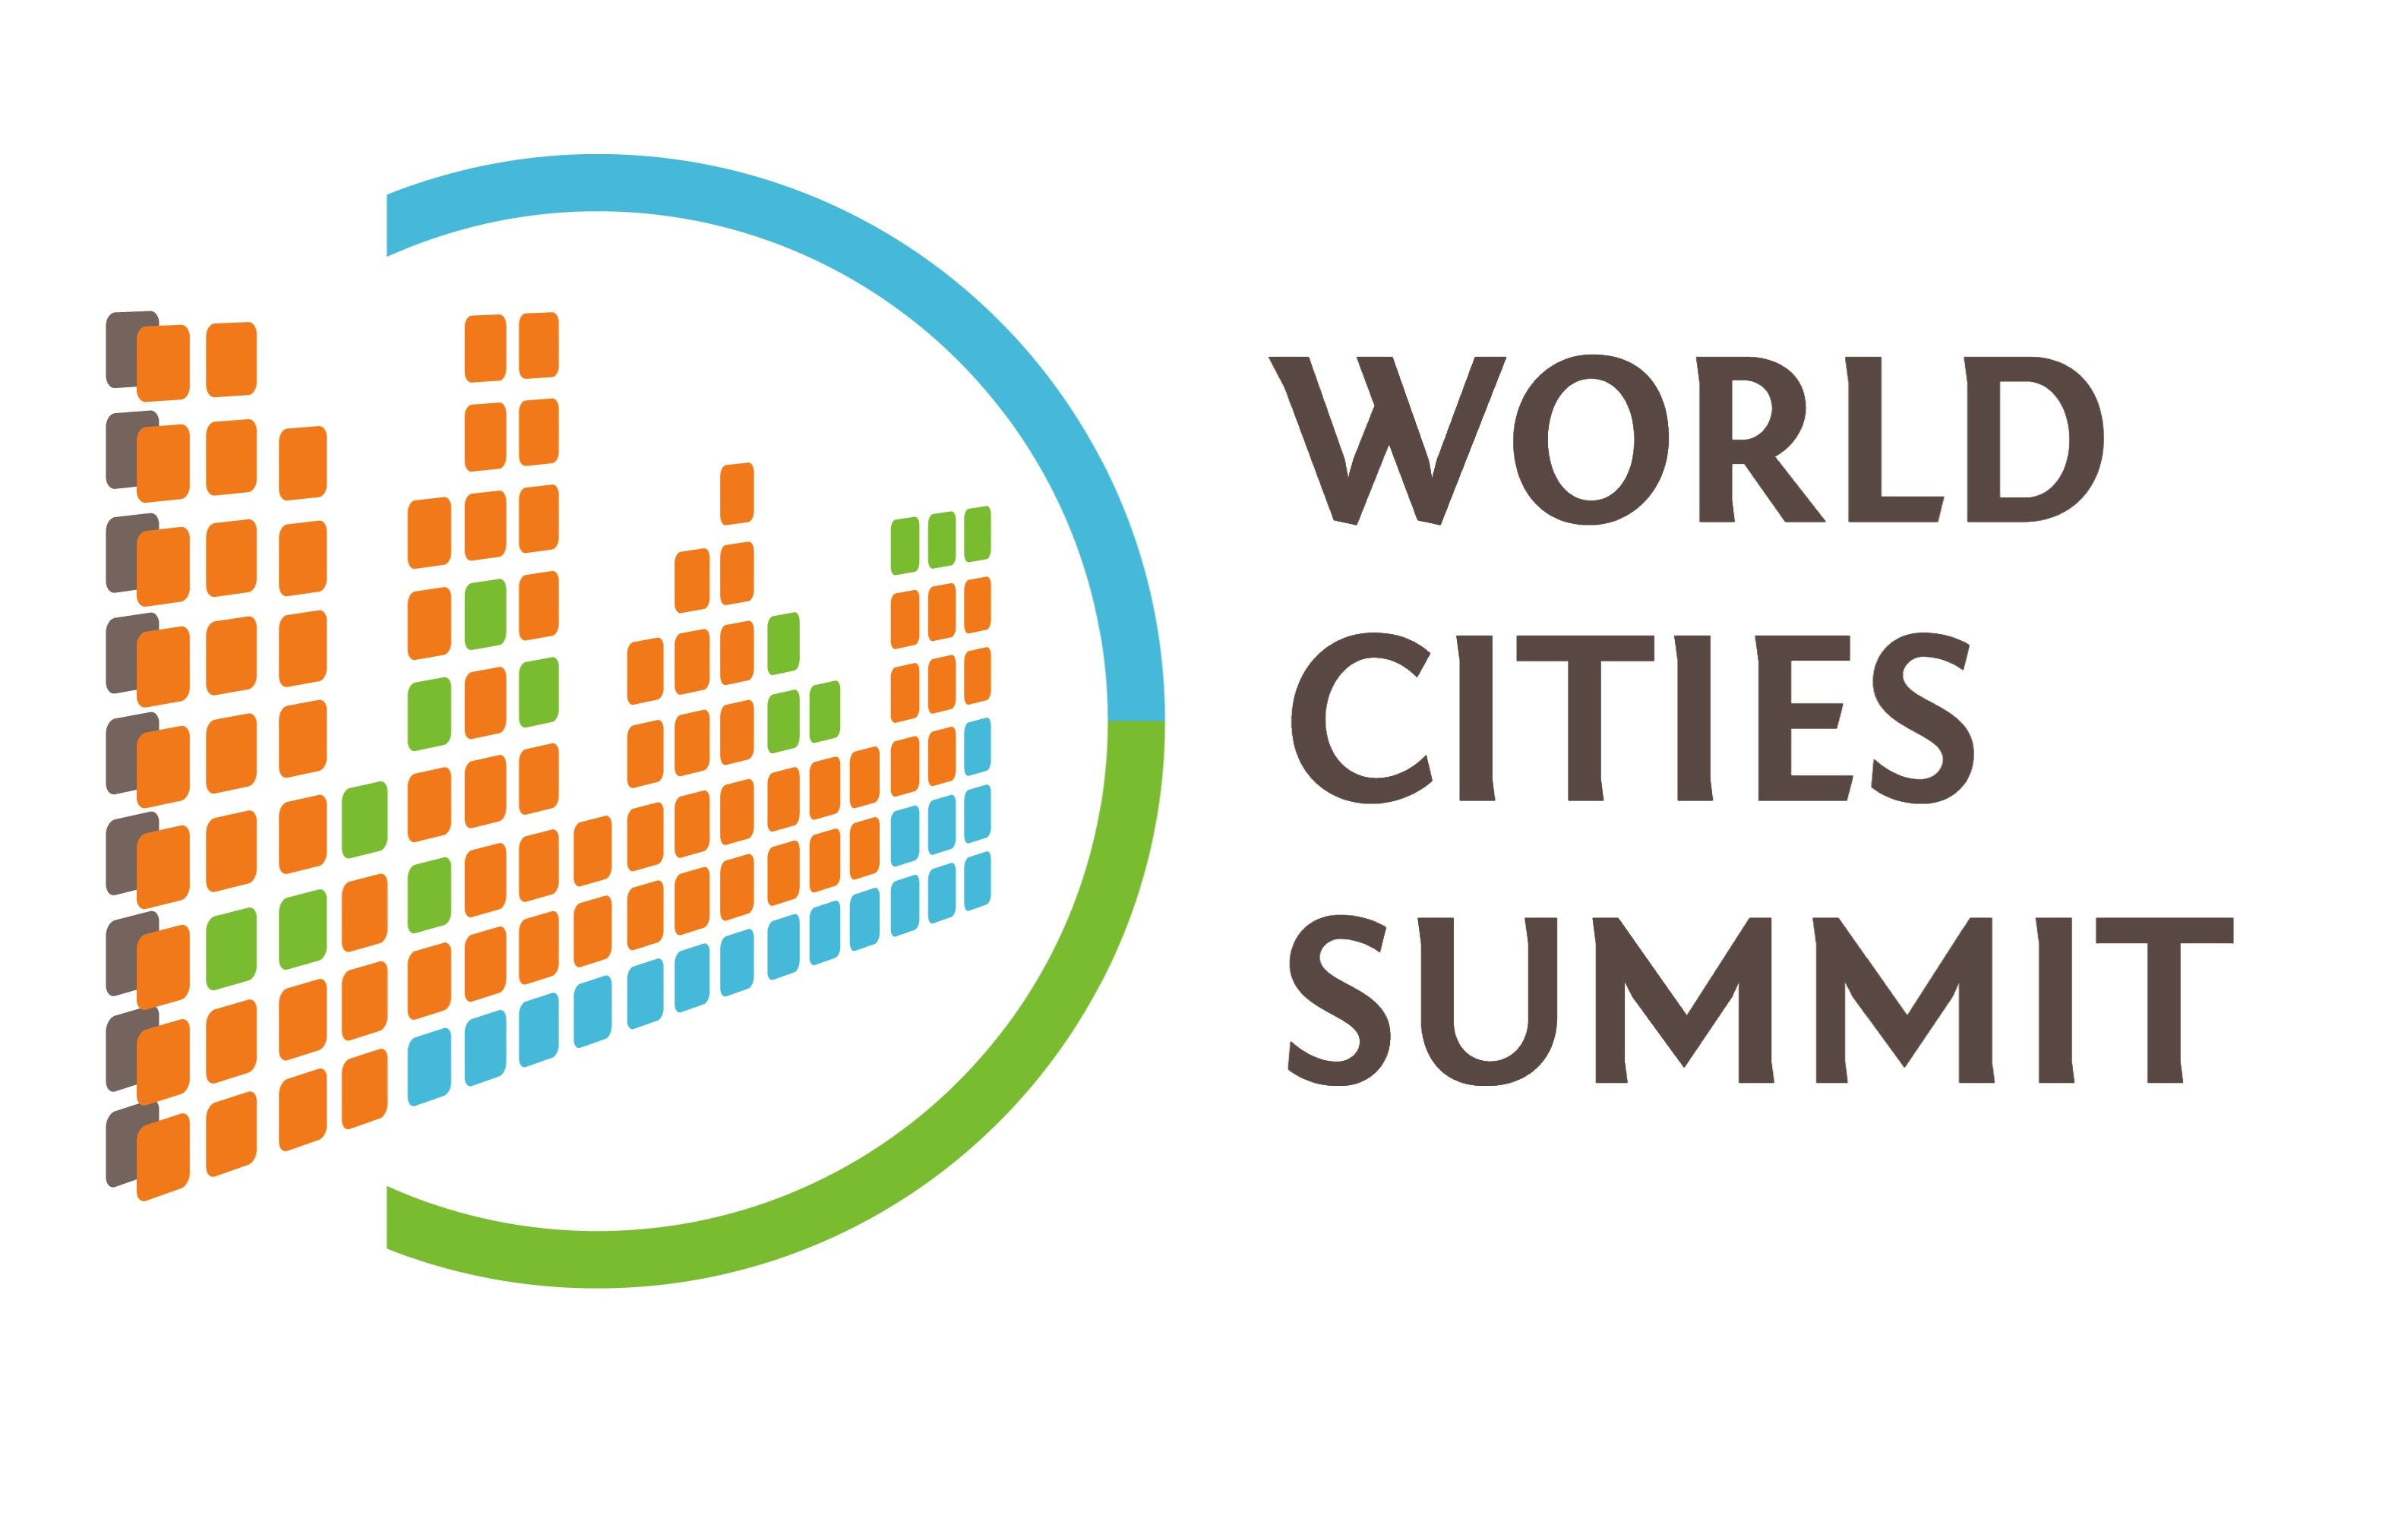 Vietnam attends world cities summit